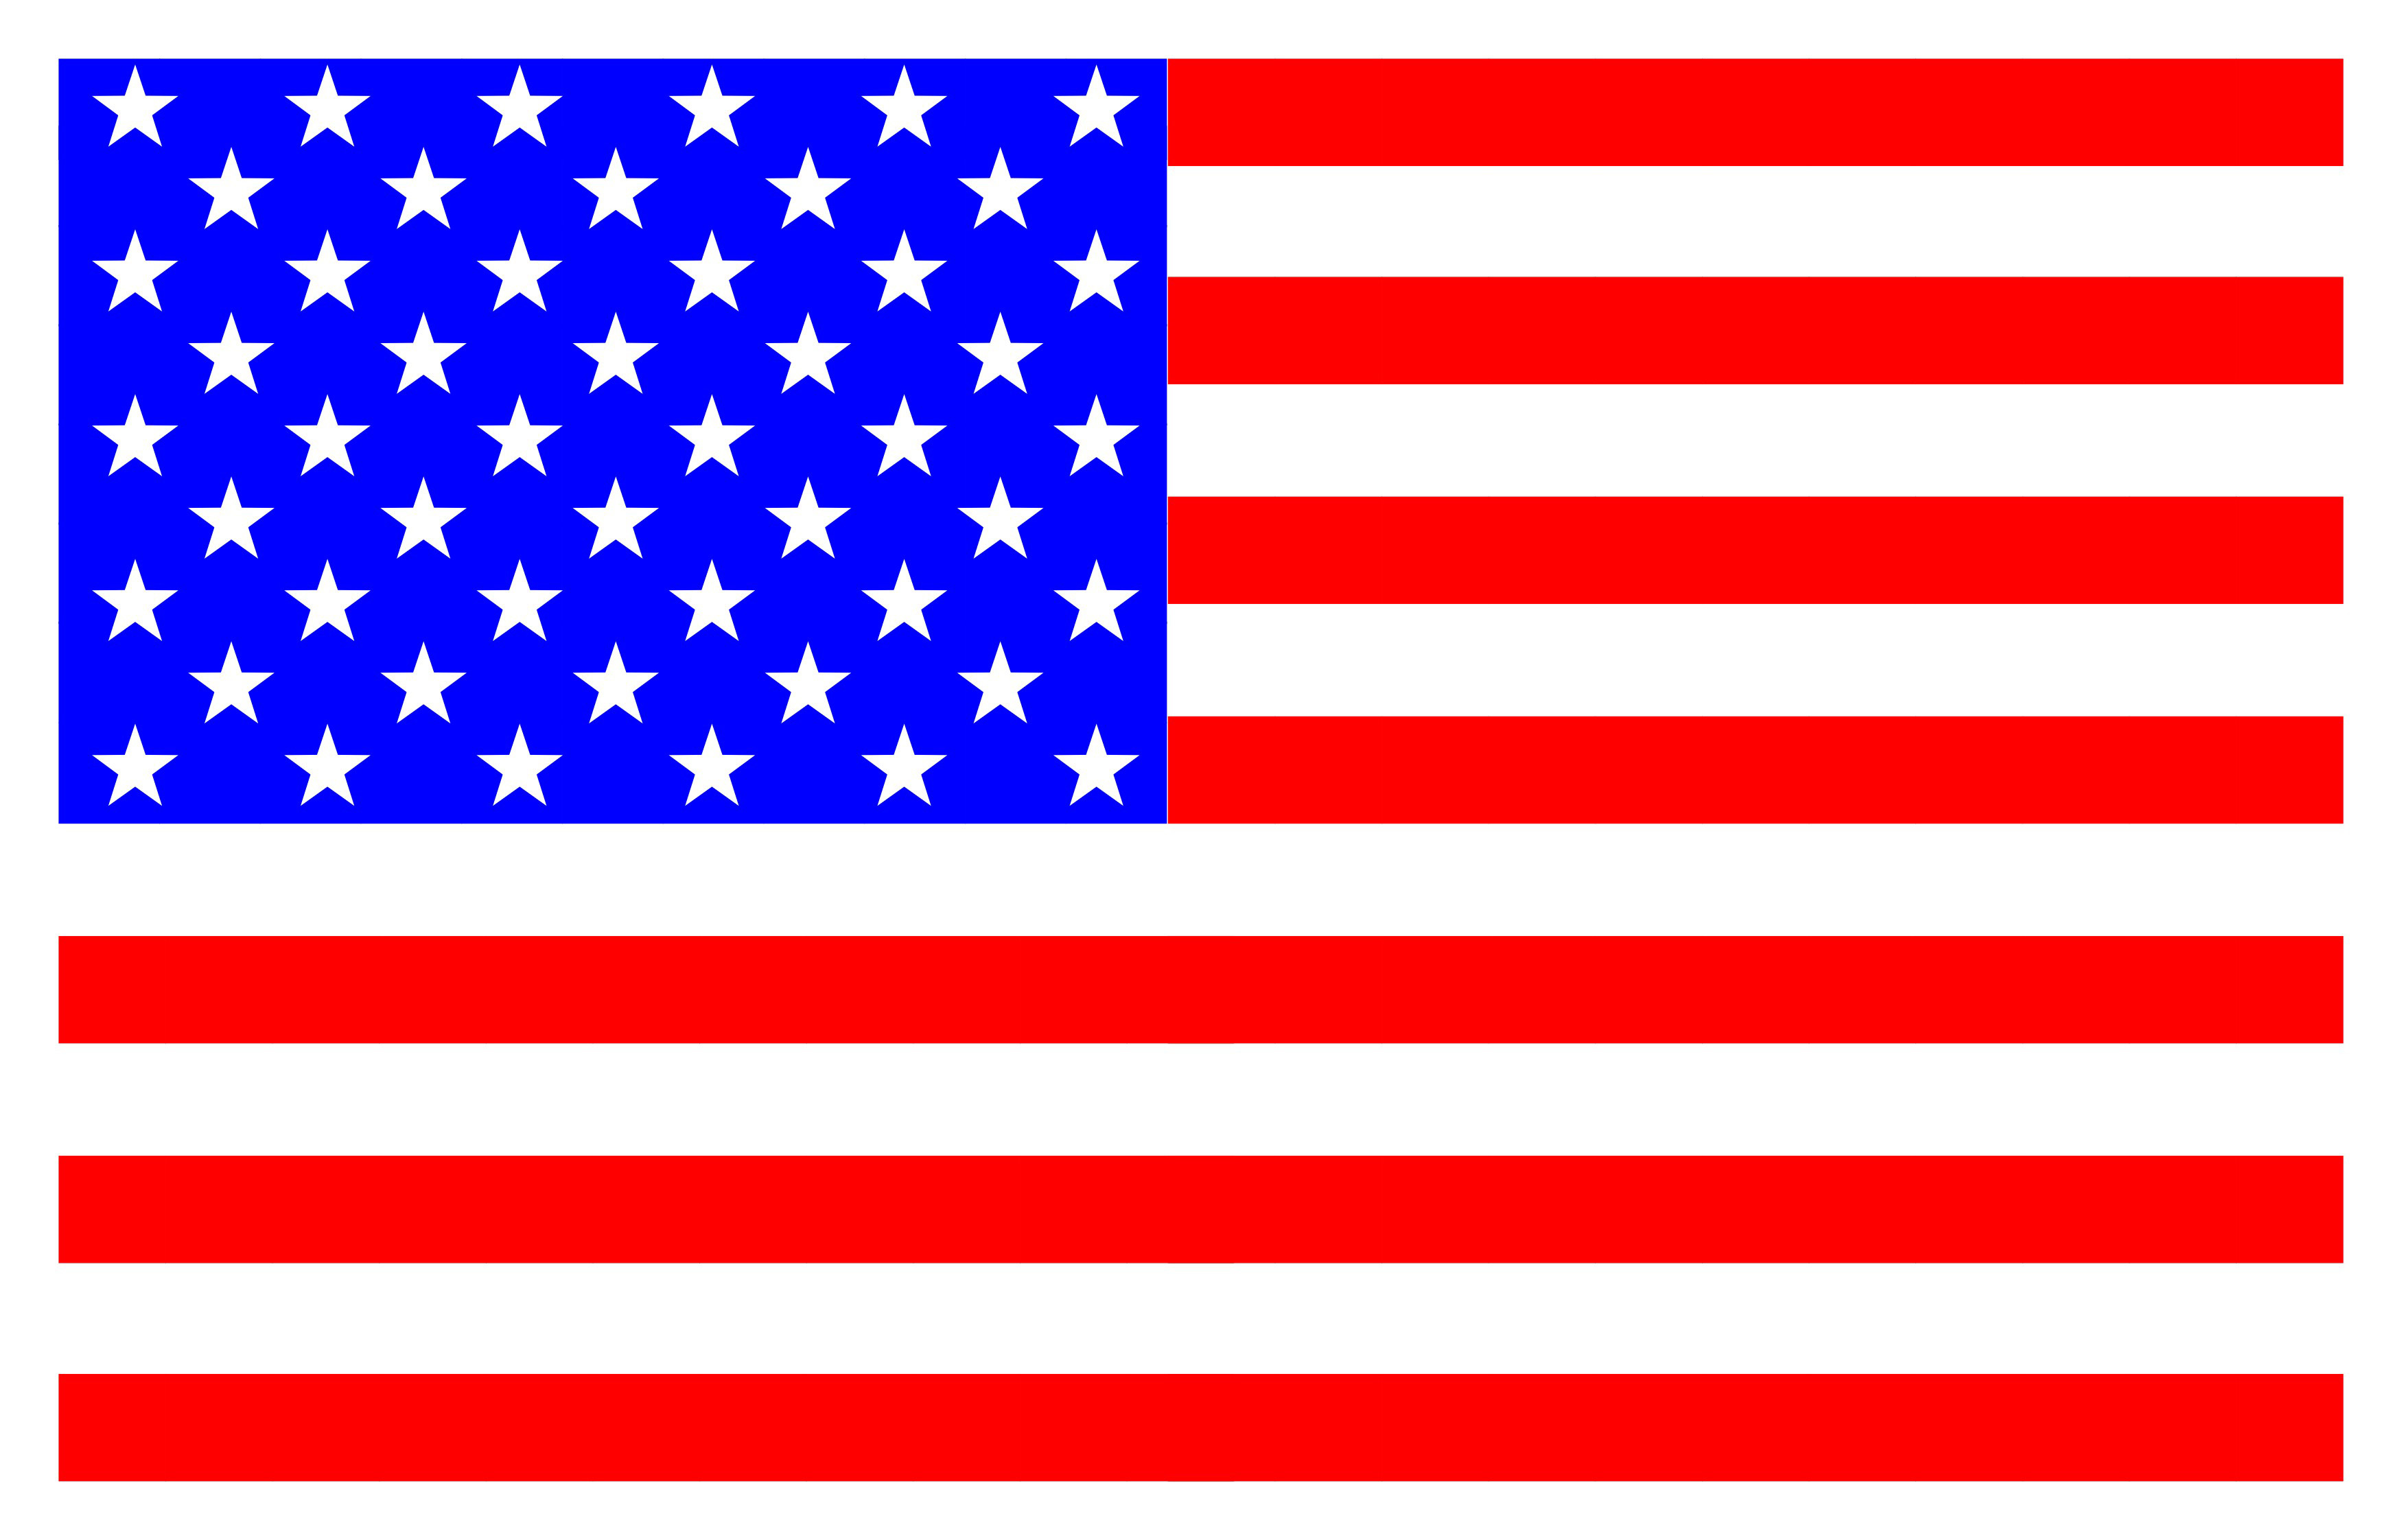 Decoding The American Flag